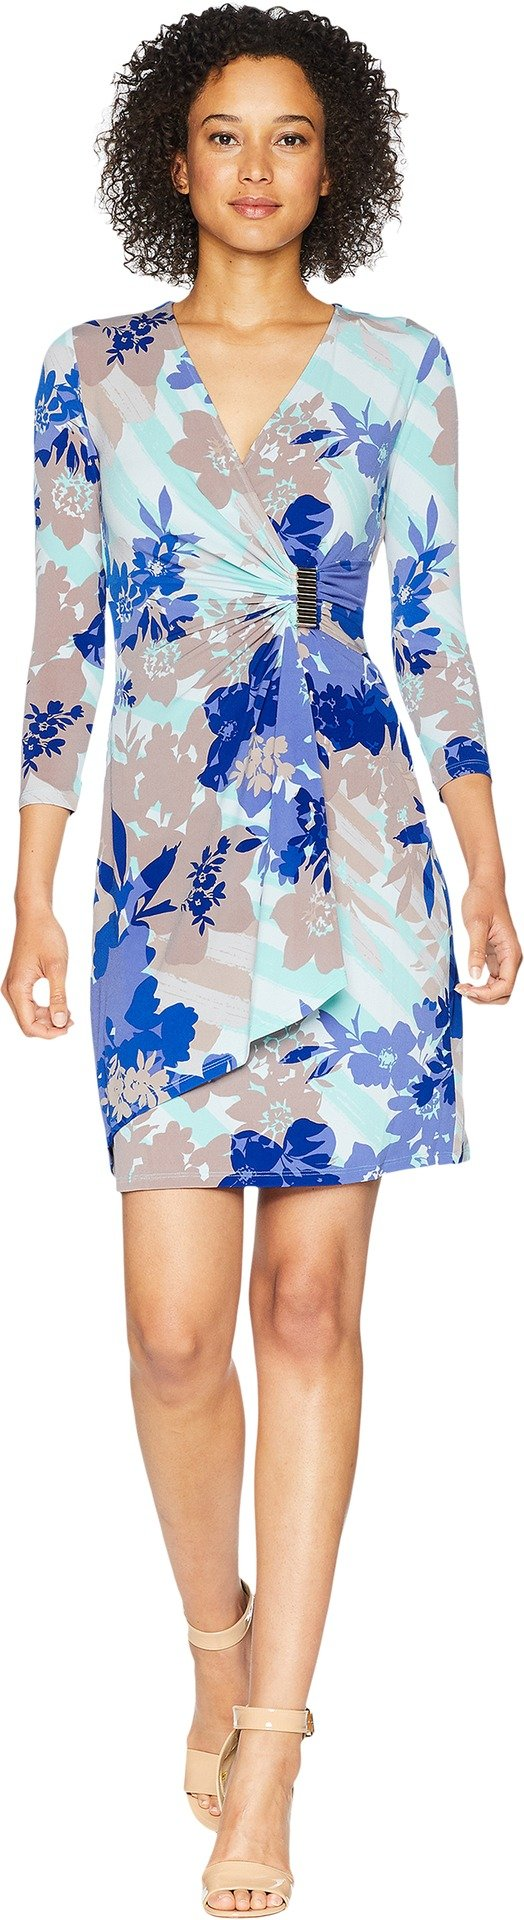 Calvin Klein Women's 3/4 Sleeve Mock Wrap Dress, Sea Glass Multi 18, 2